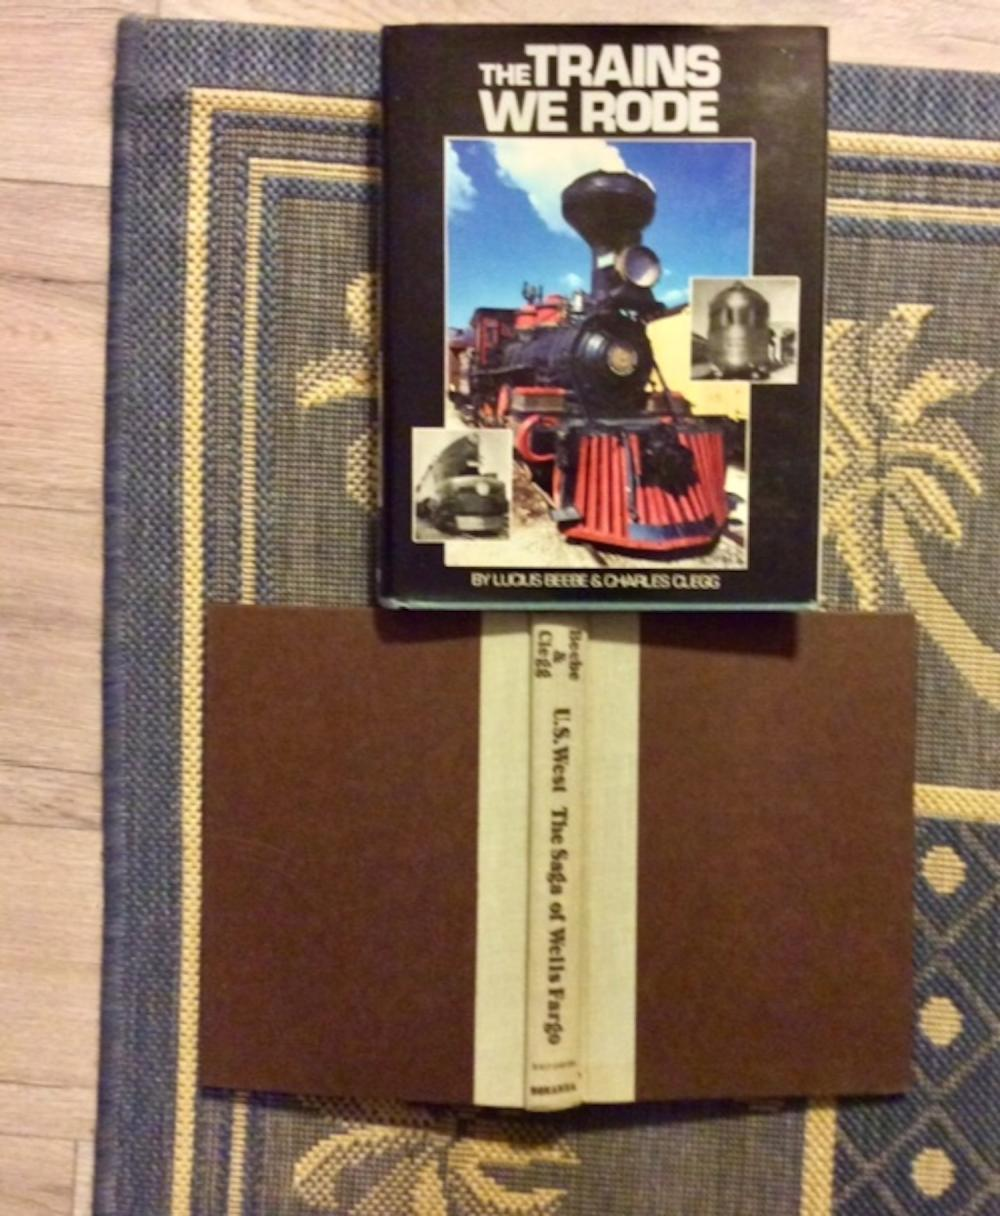 (2) Collectible Hardcovers On Trains, Railroads, & Transportation